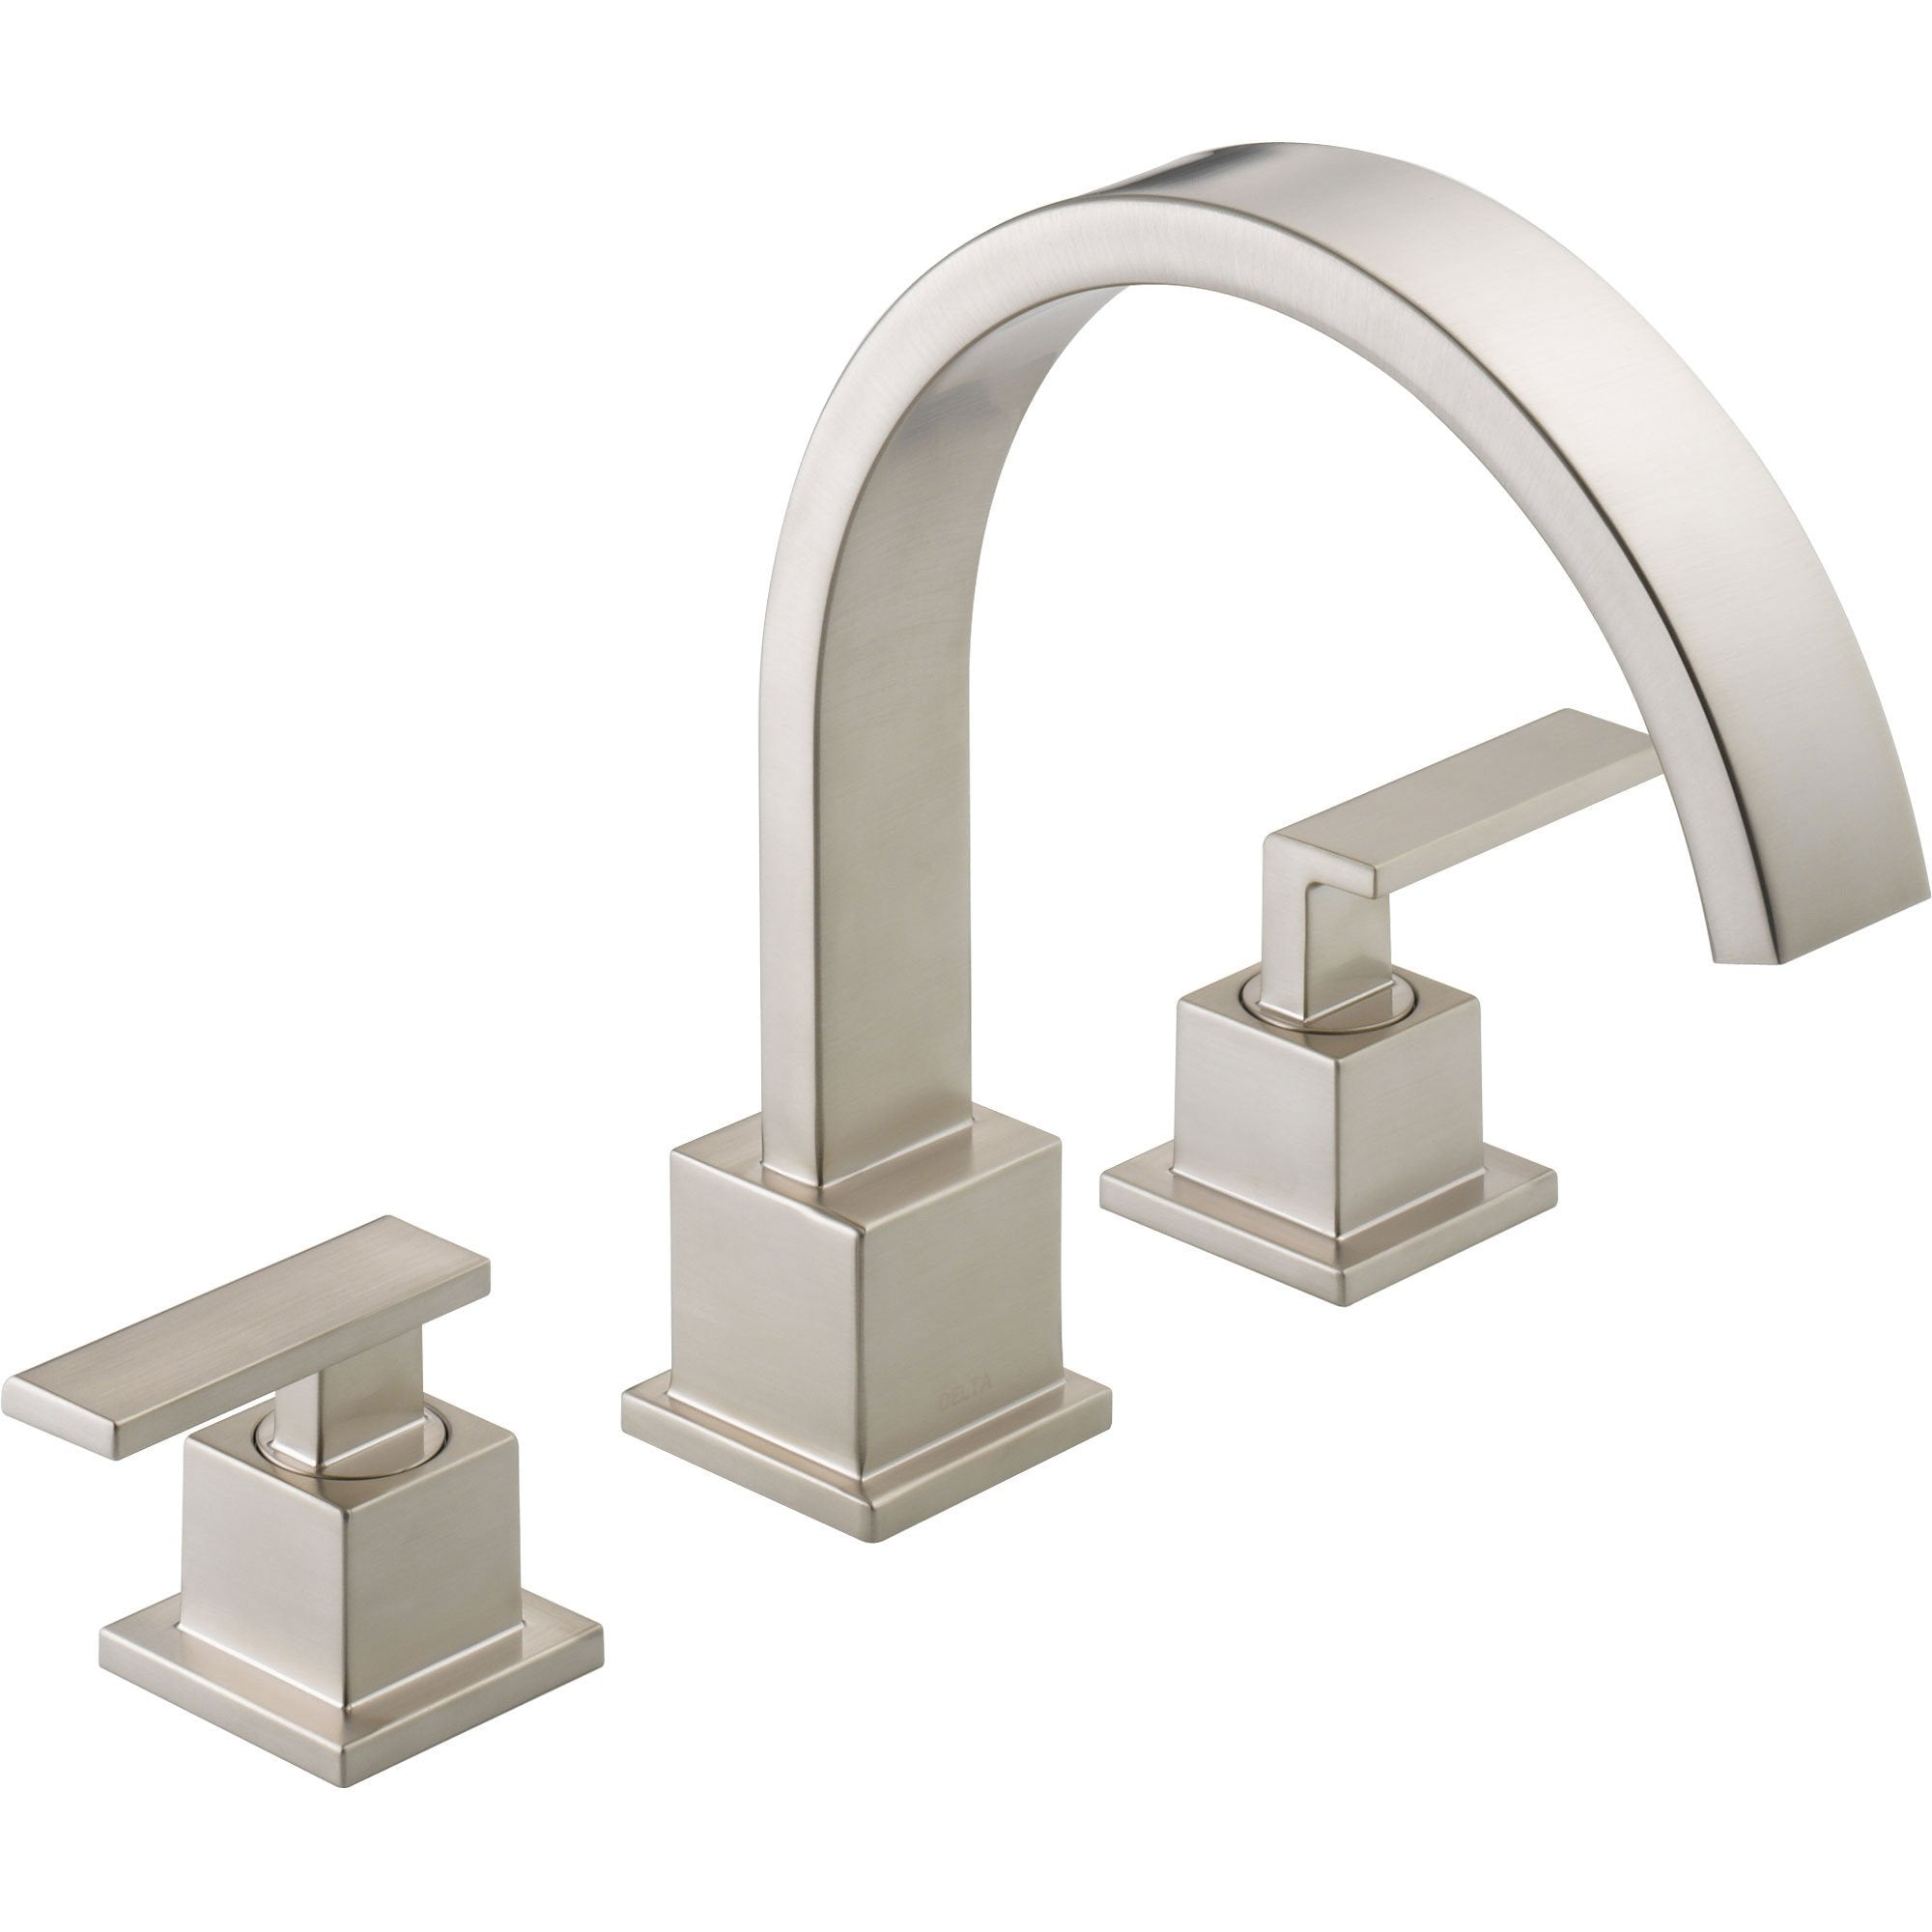 Delta Vero Modern Stainless Steel Finish Roman Tub Faucet Trim Kit 521910